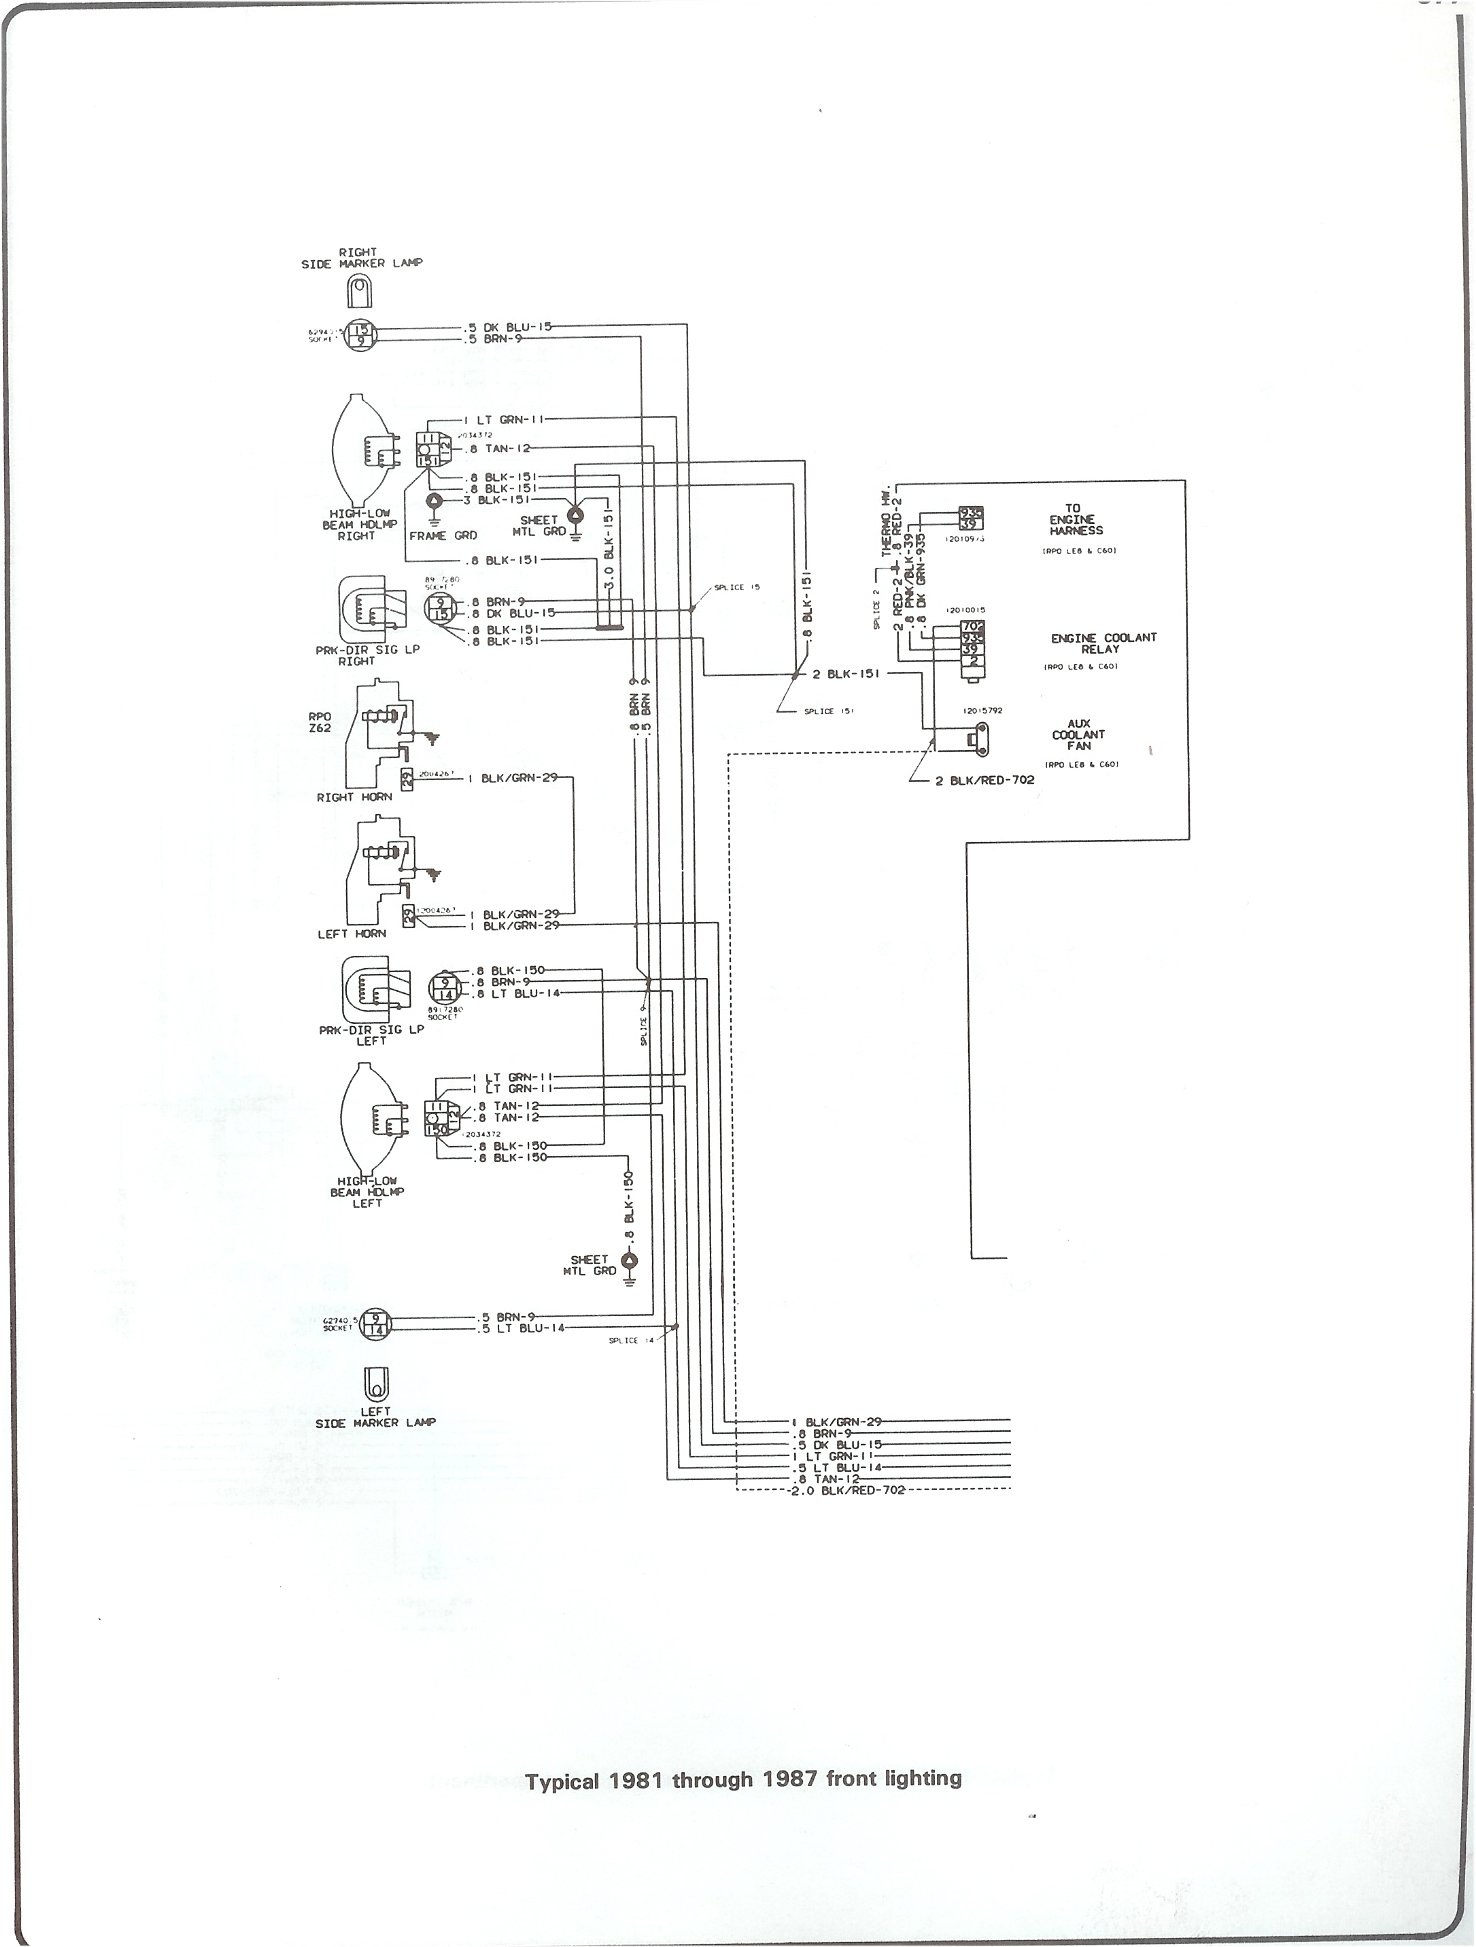 Maxresdefault also Instrument Panel Of Chevy C Fuse Box Wiring Diagram With Heater Blower And Fuse Block Or Dimmer Flasher X moreover Maxresdefault additionally Maxresdefault furthermore Maxresdefault. on 1984 chevy c10 wiring diagram